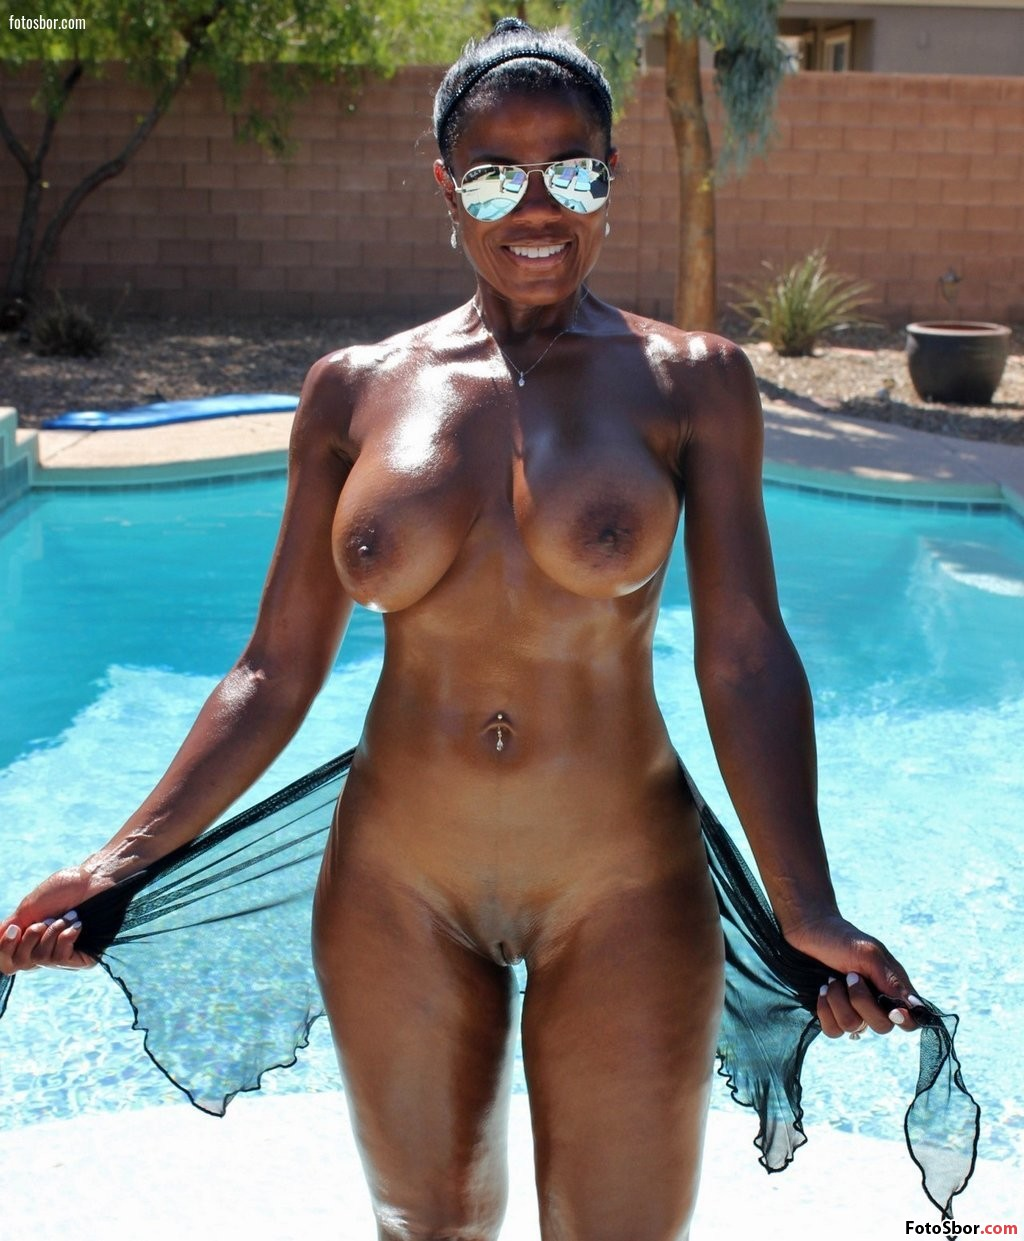 Nude Ebony With Glasses